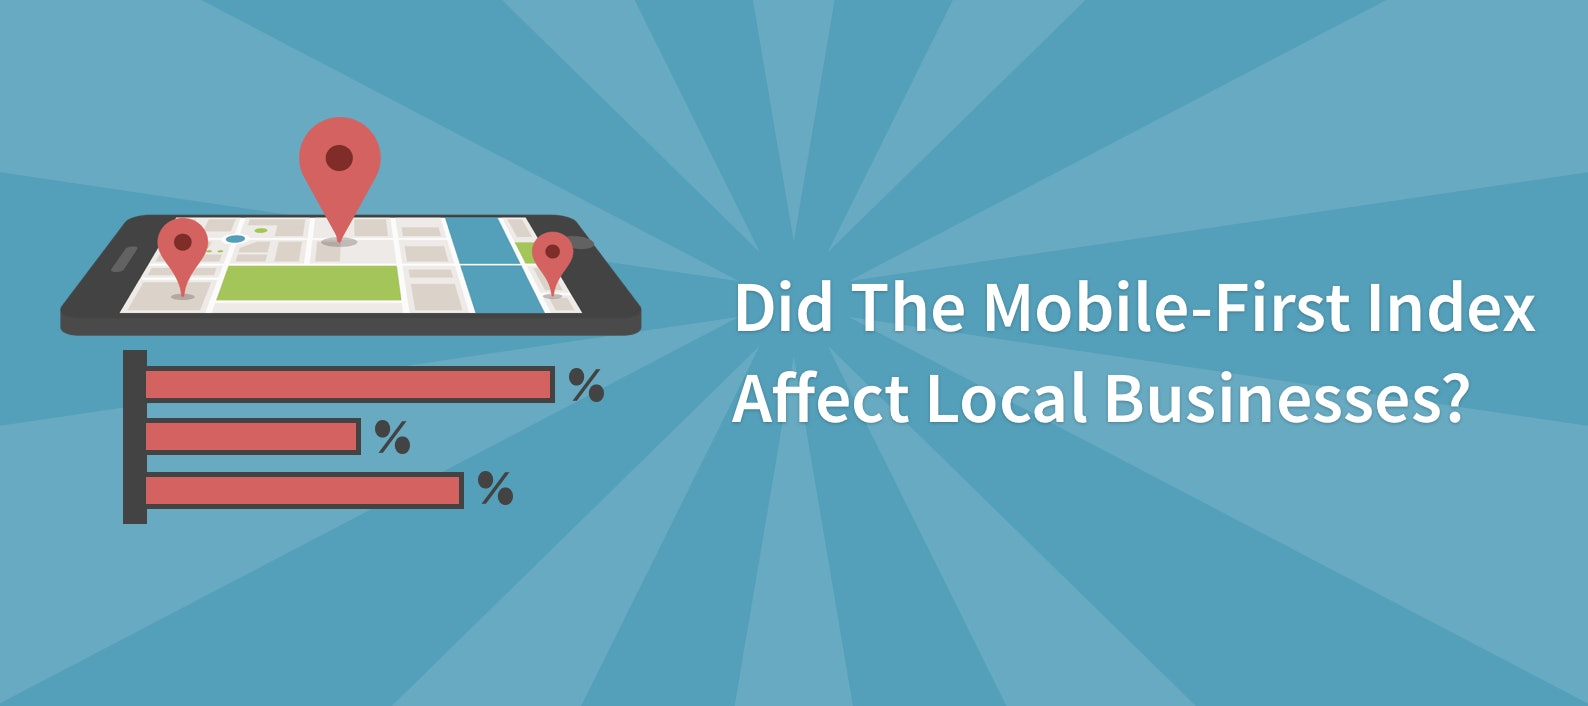 Poll Results: Did the Mobile-first Index Affect Local Businesses?